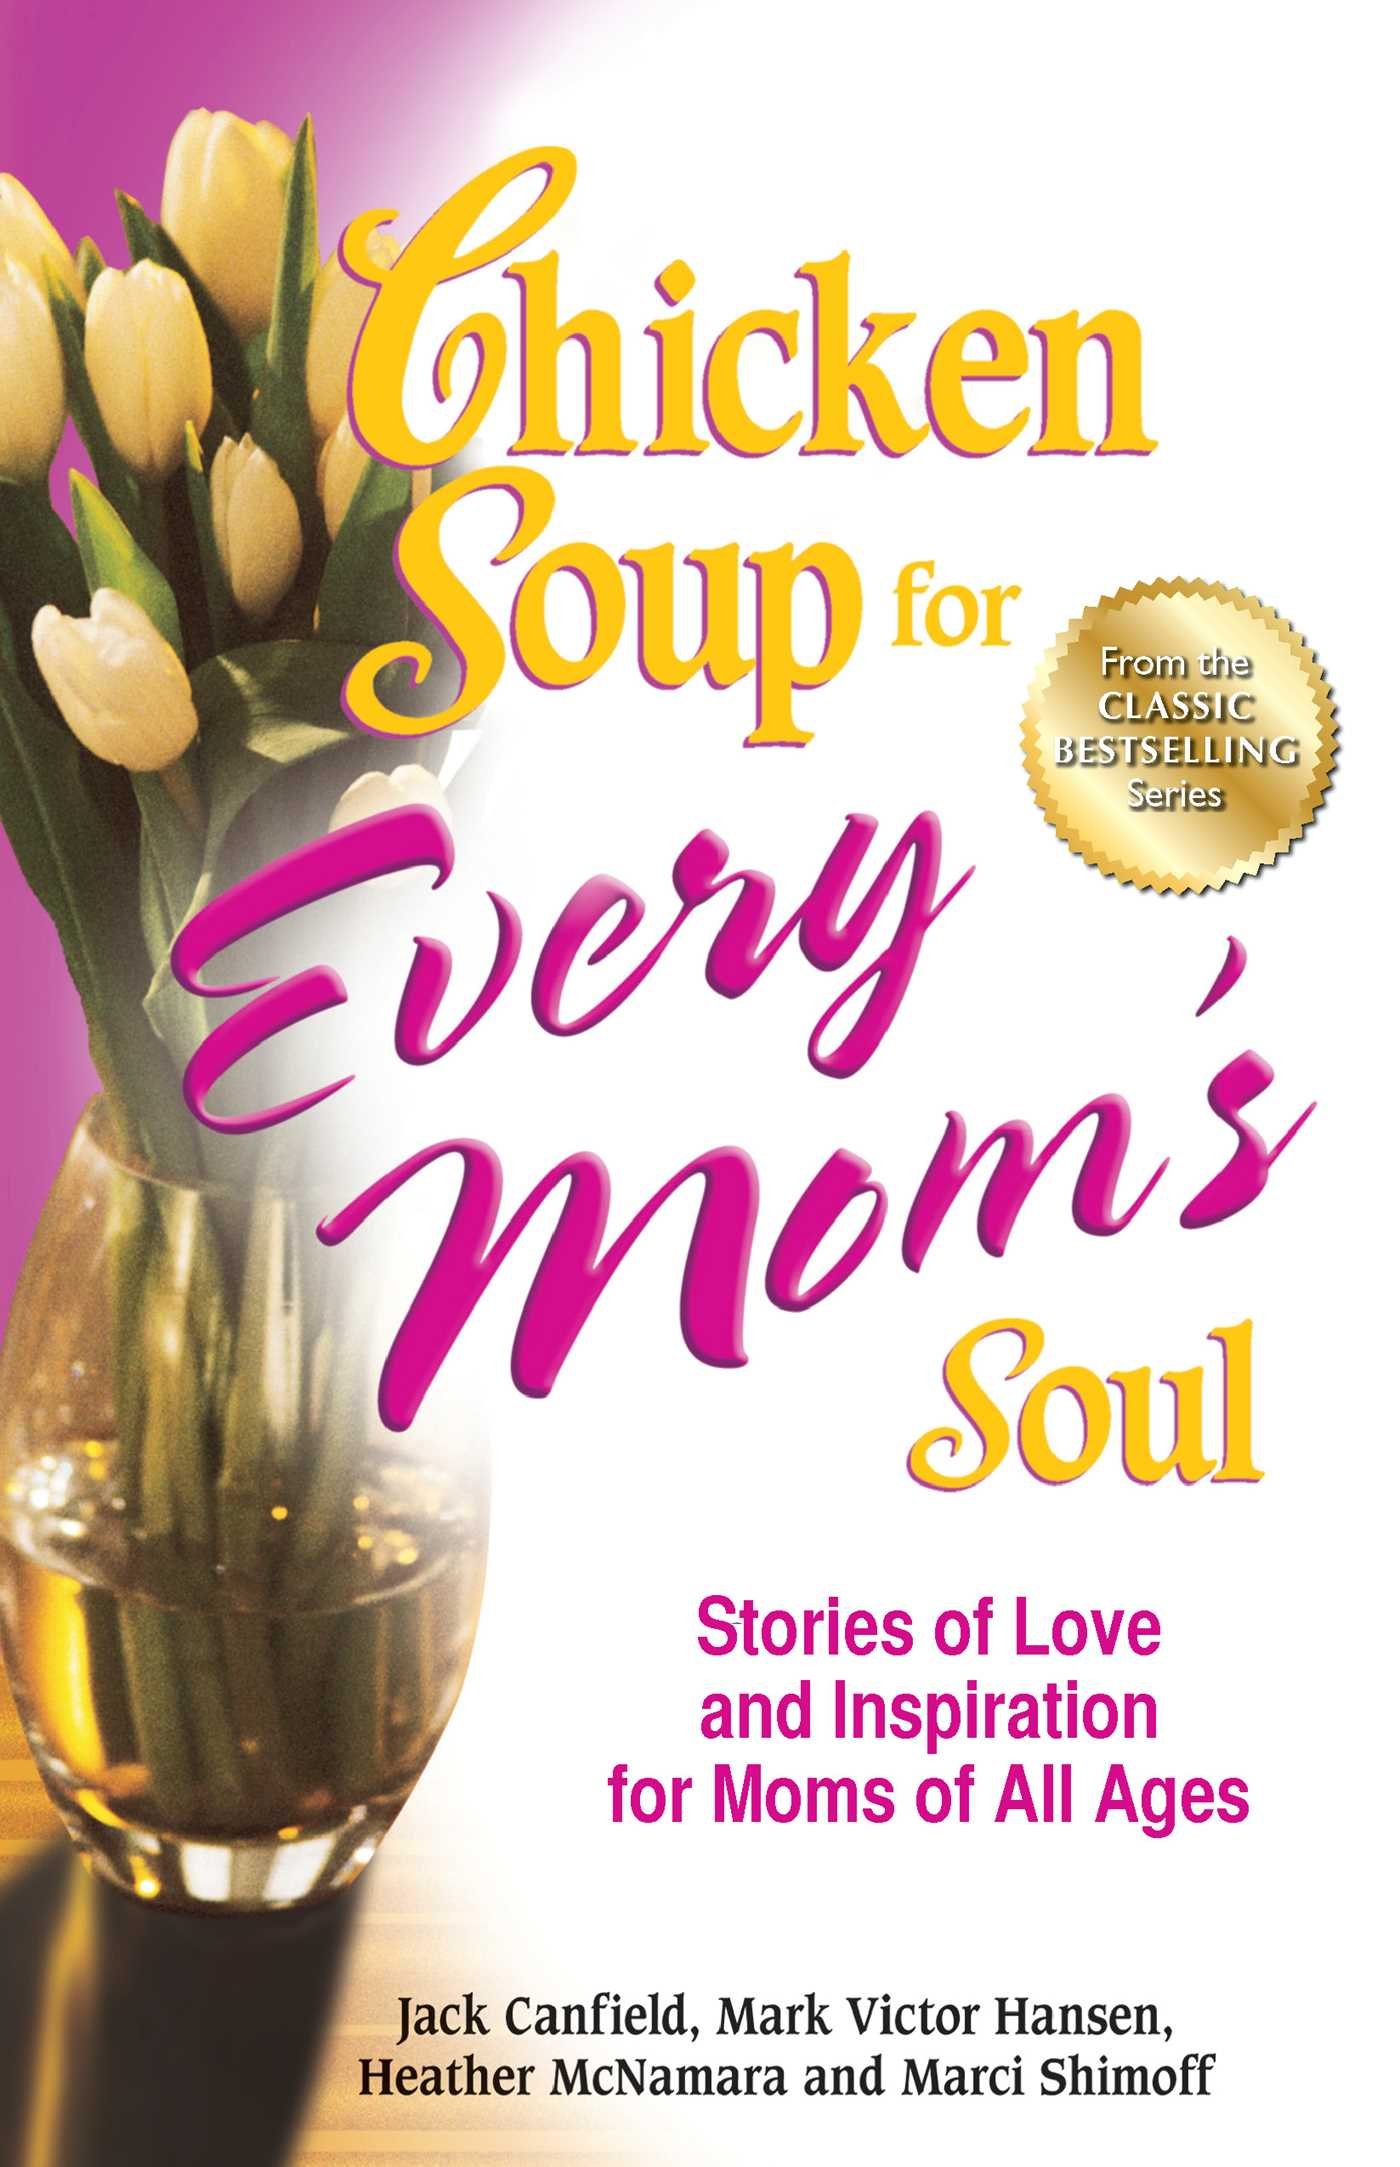 Chicken Soup for Every Mom's Soul Stories of Love and Inspiration for Moms of All Ages